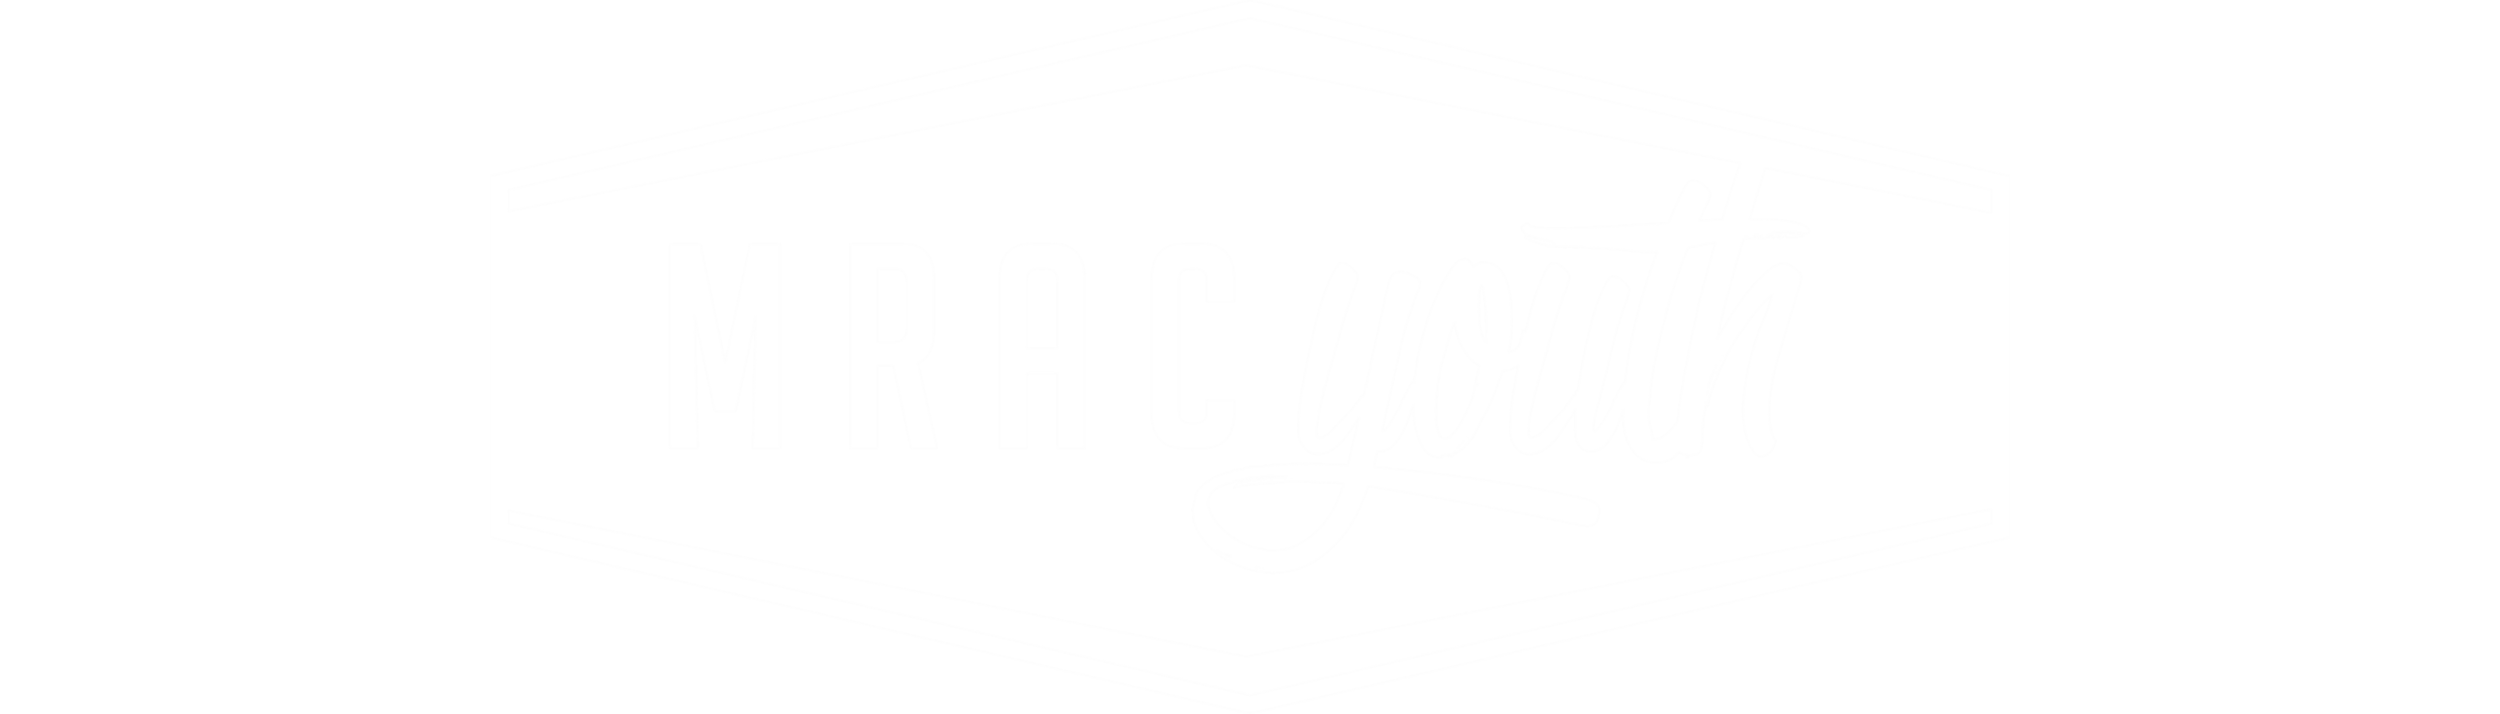 MRAC Youth padded.png